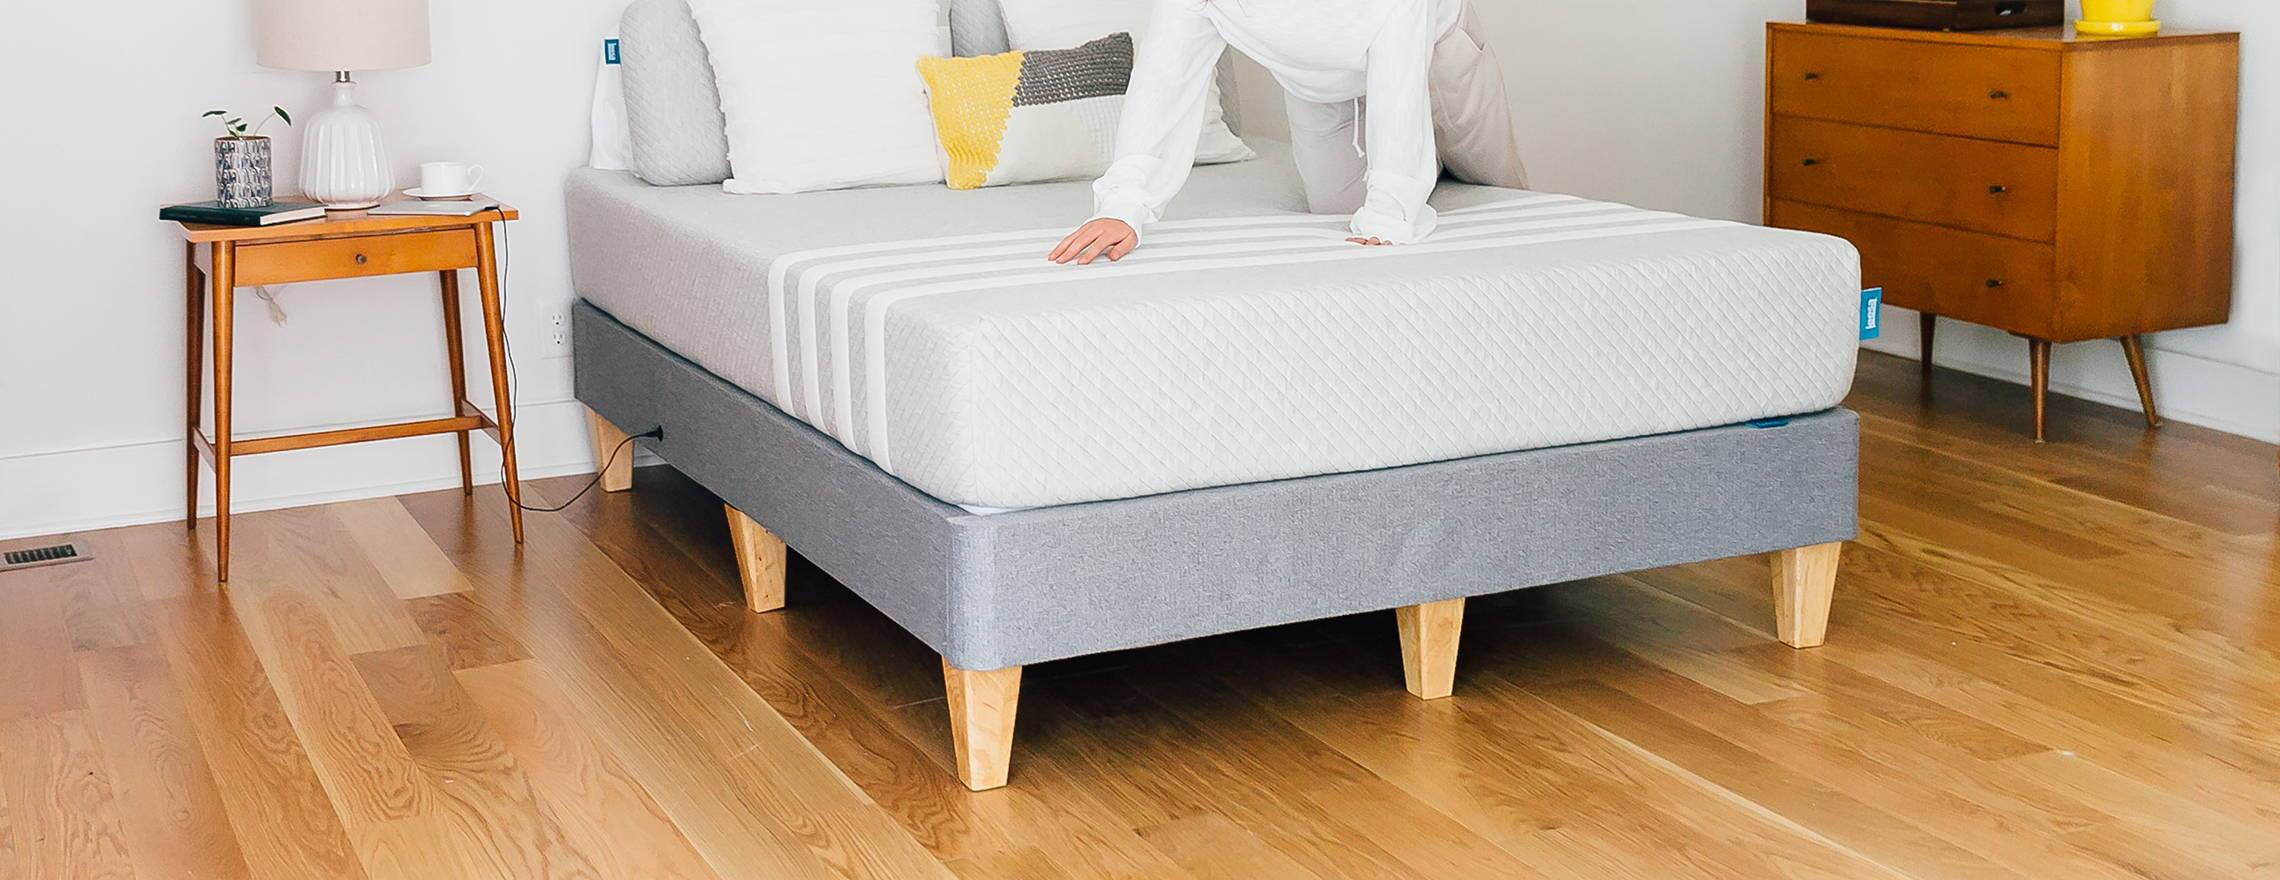 lady_climbing_onto_a_leesa_mattress_in_a_decorated_room